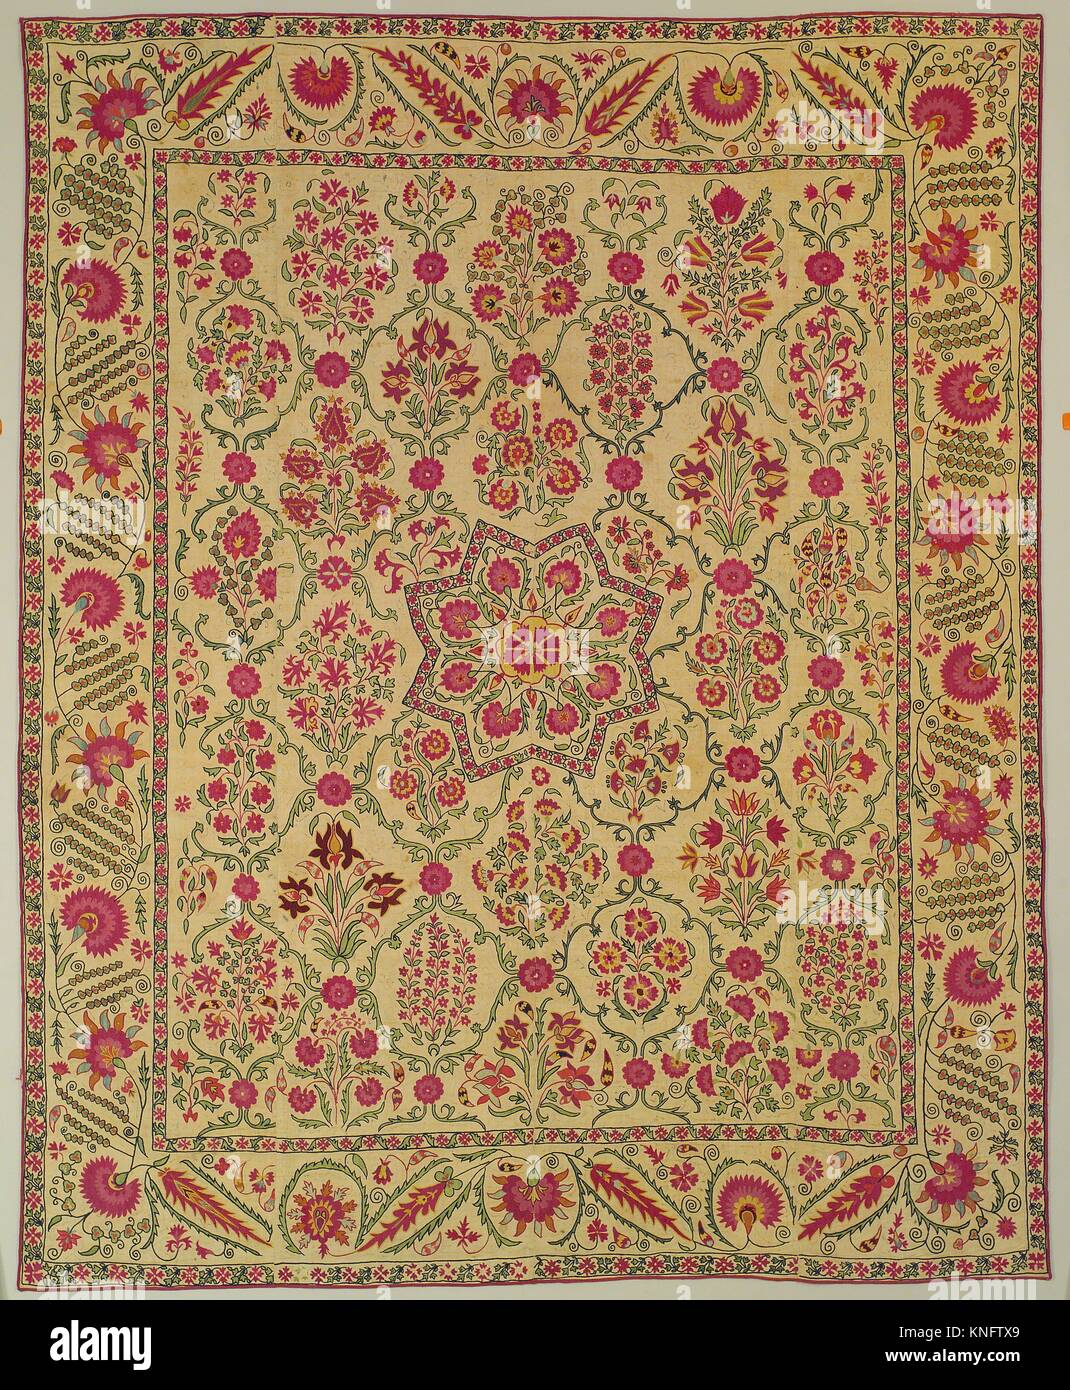 Hanging. Date: early 19th century; Geography: Attributed to present-day Uzbekistan, Nurata; Medium: Silk embroidery - Stock Image